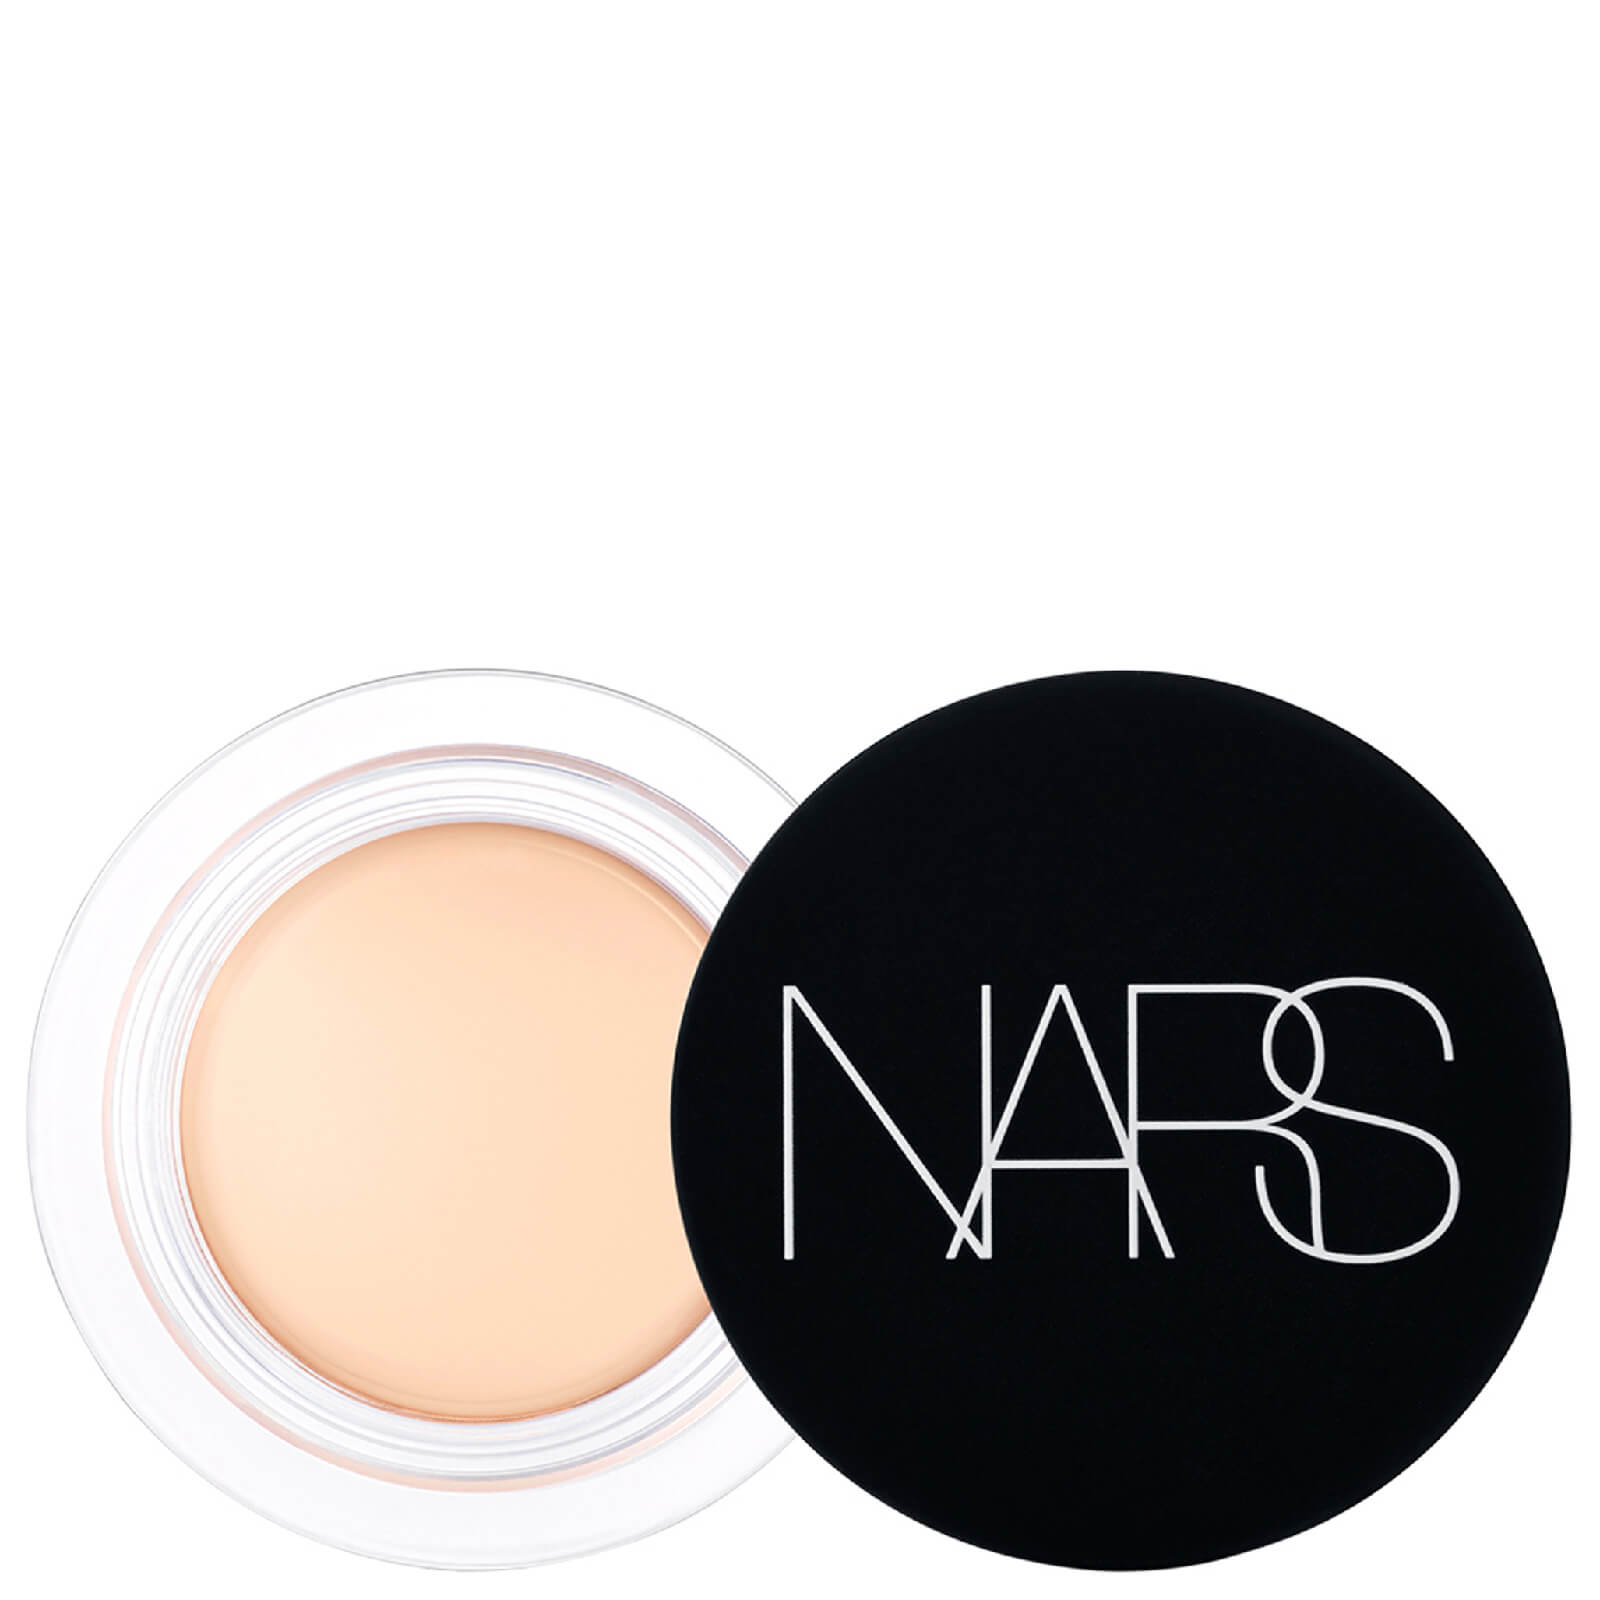 NARS Cosmetics Soft Matte Complete Concealer 5g (Various Shades)